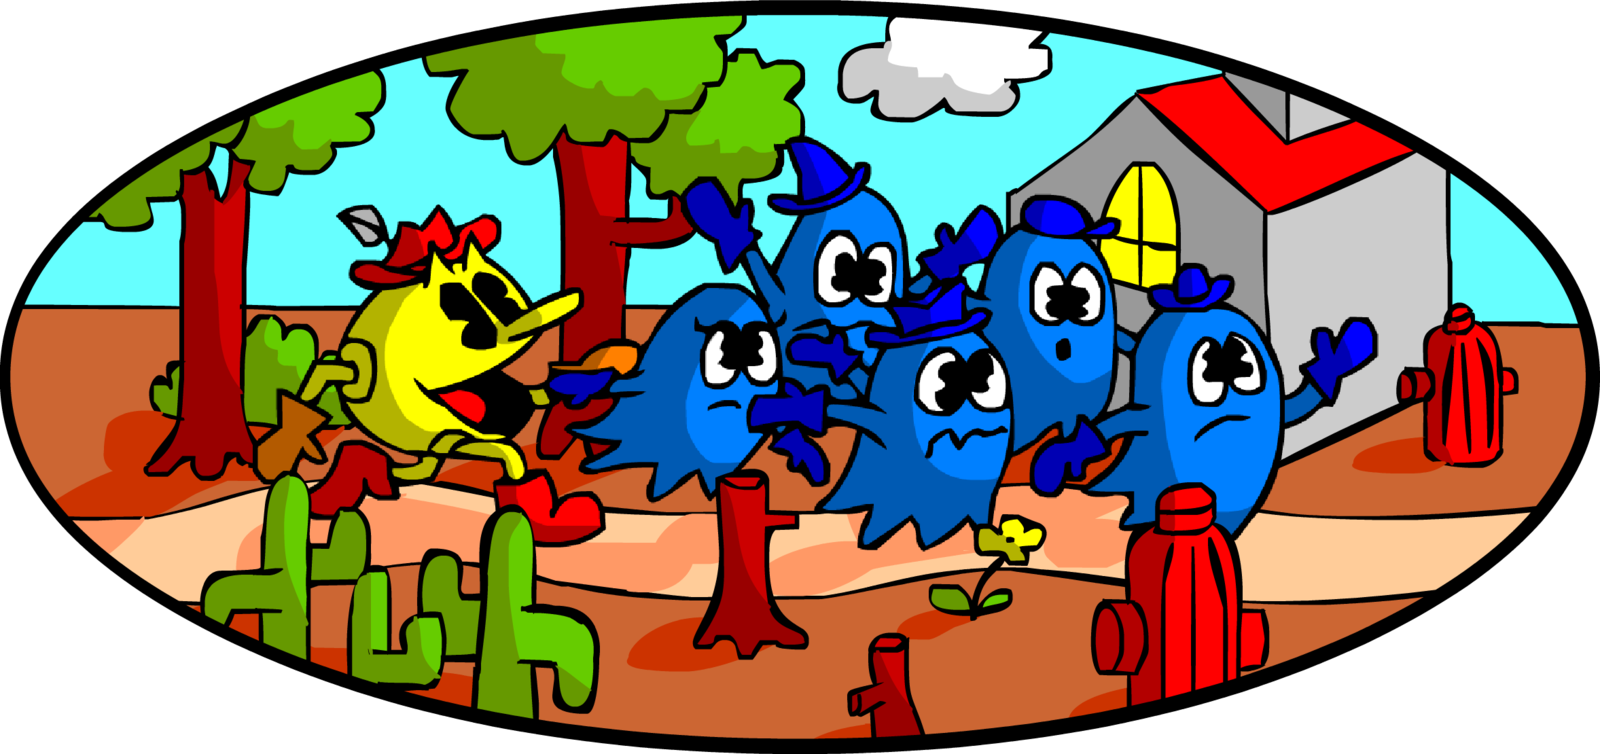 Pac by ashumbesher on. Land clipart land ownership